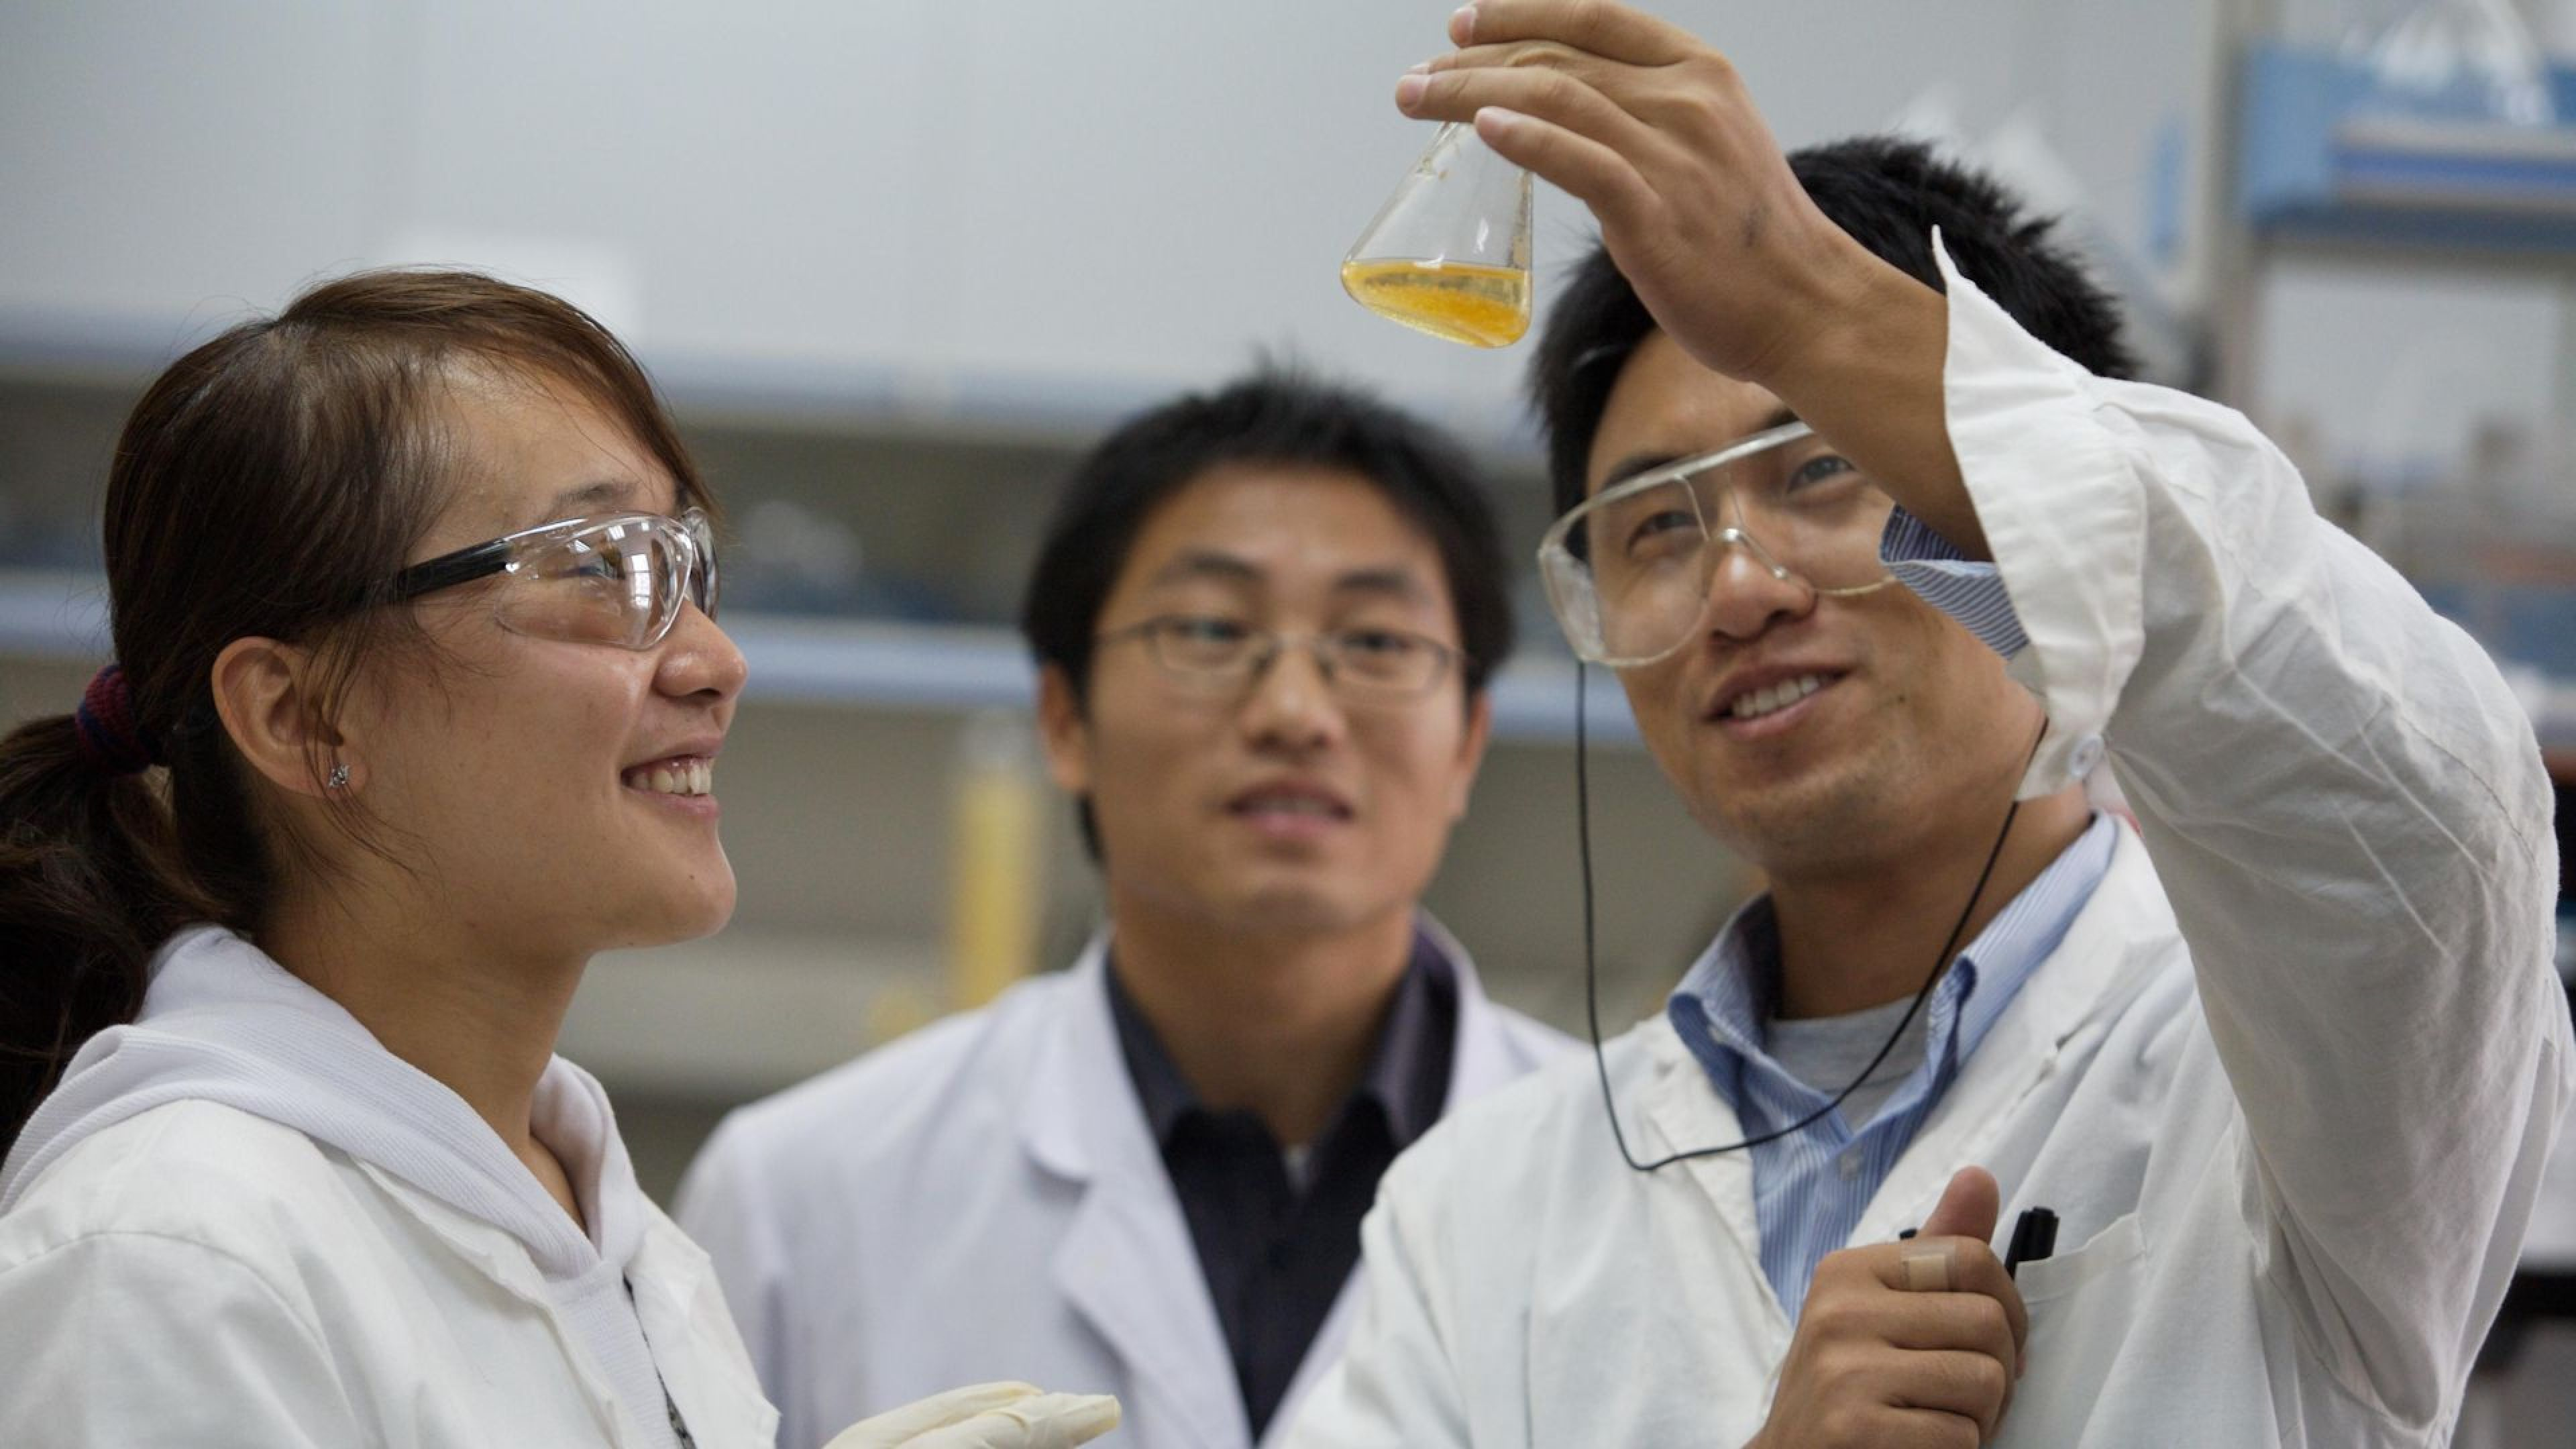 Researchers discussing the contents of a beaker in the laboratory of the Dalian Institute of Chemical Physics (DICP) in Dalian, China.